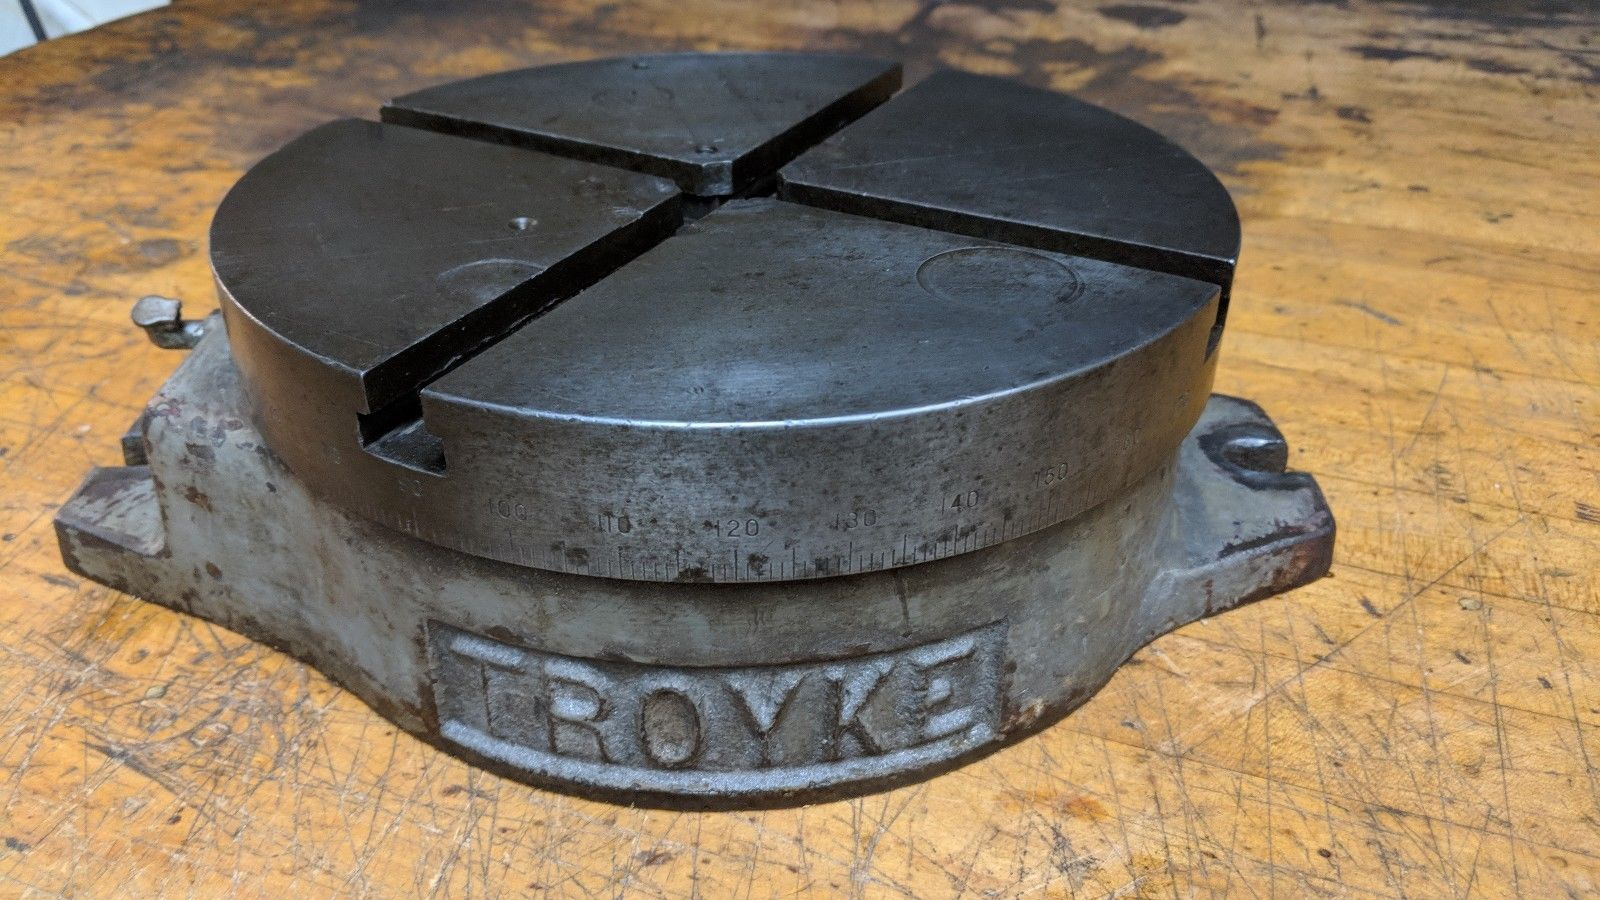 Troyke 9 inch Rotary Table BH-9 for bridgeport milling machine